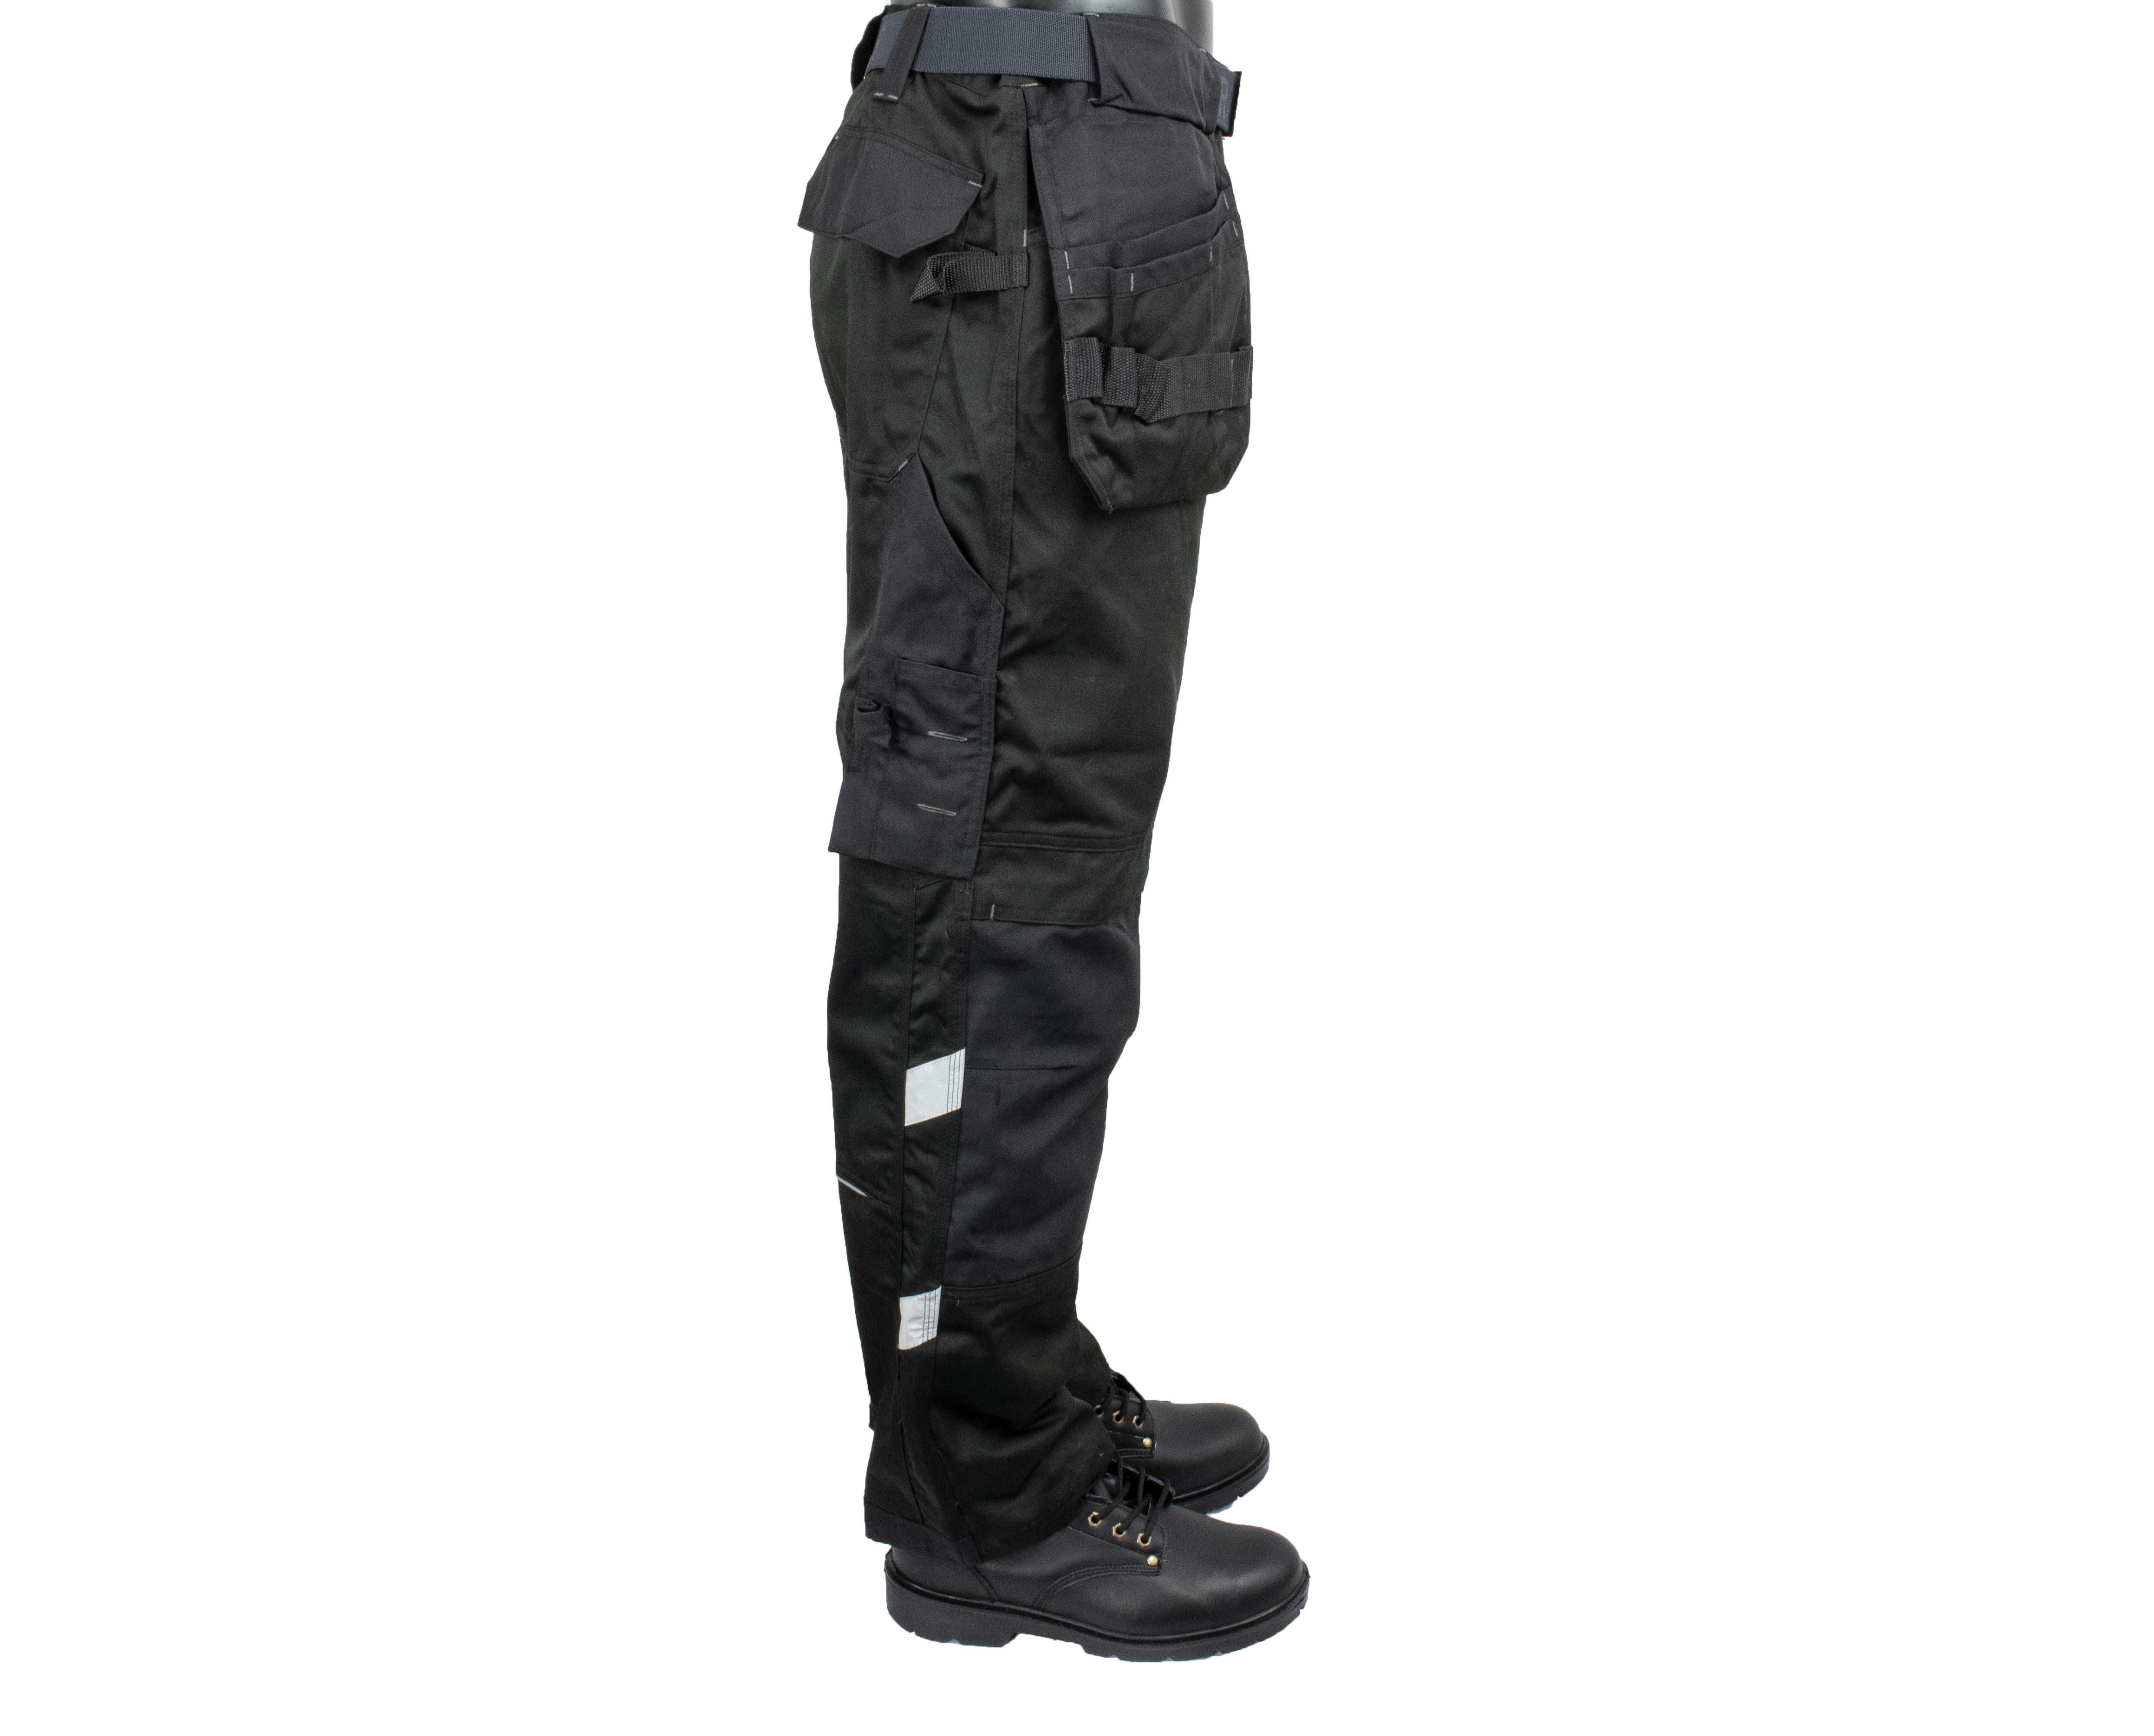 Combat Bodyguard Work Trouser